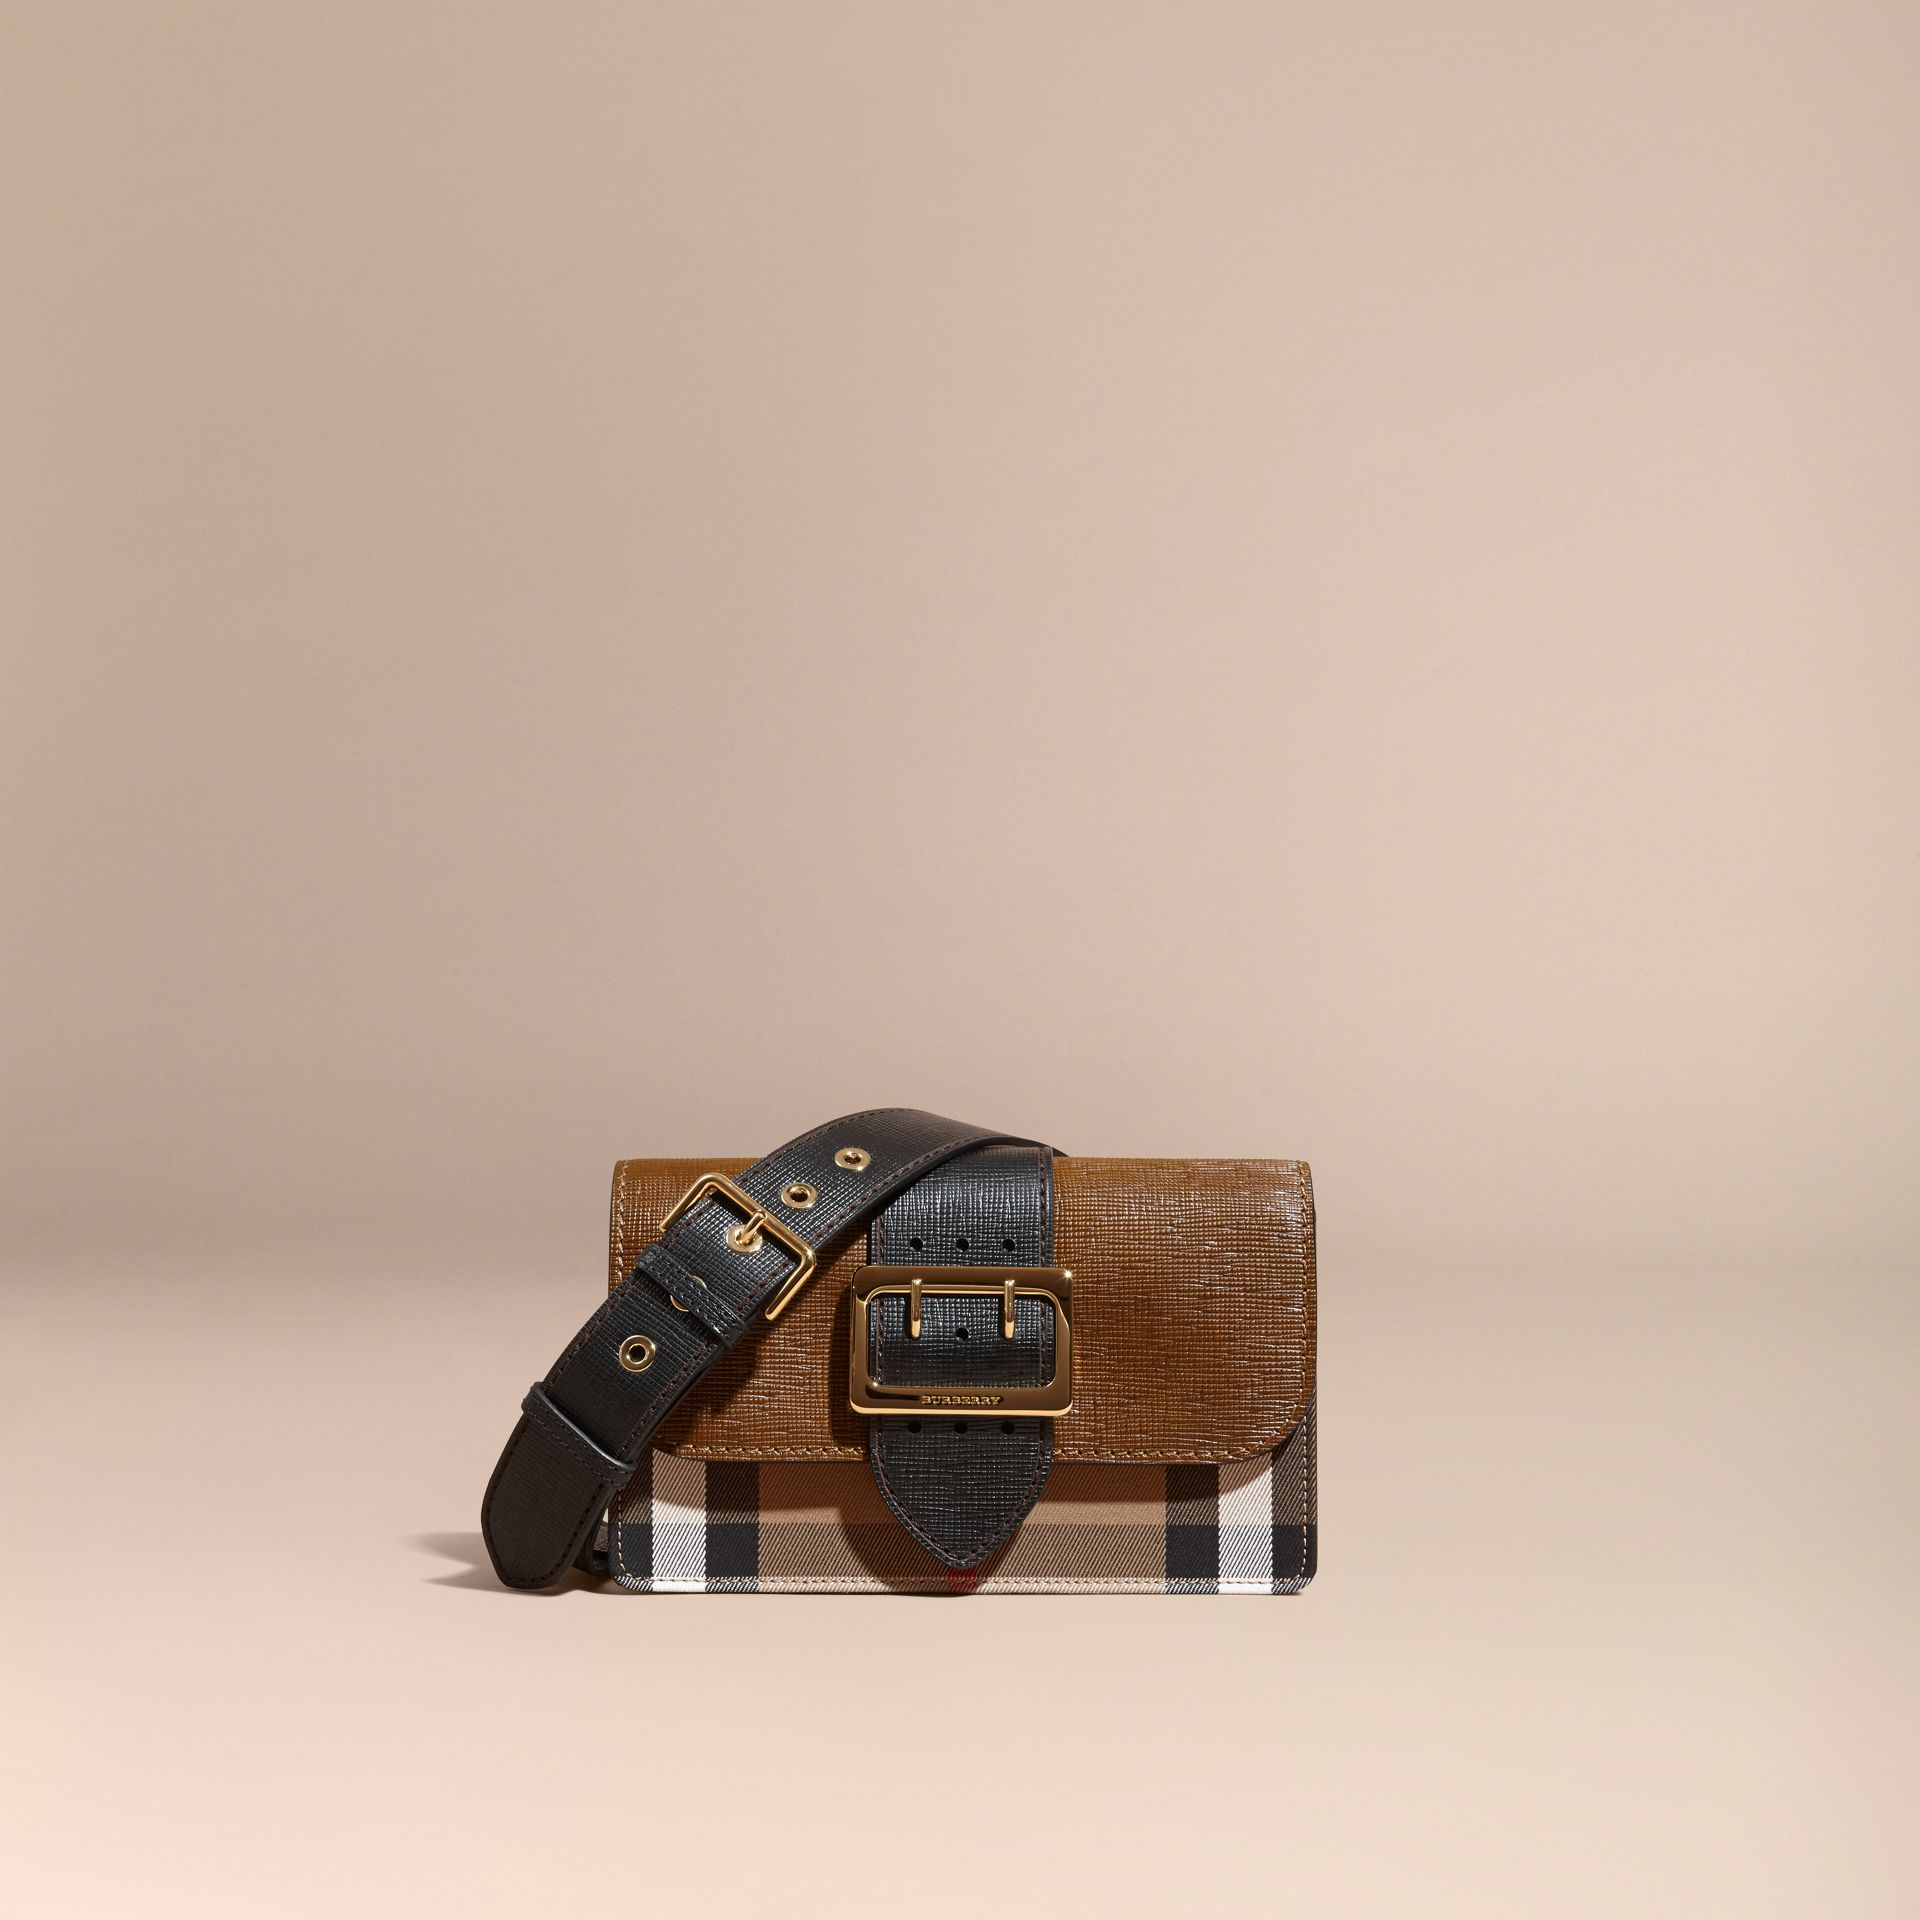 Borsa The Buckle media con motivo House check e pelle effetto texture (Marroncino/nero) - immagine della galleria 9